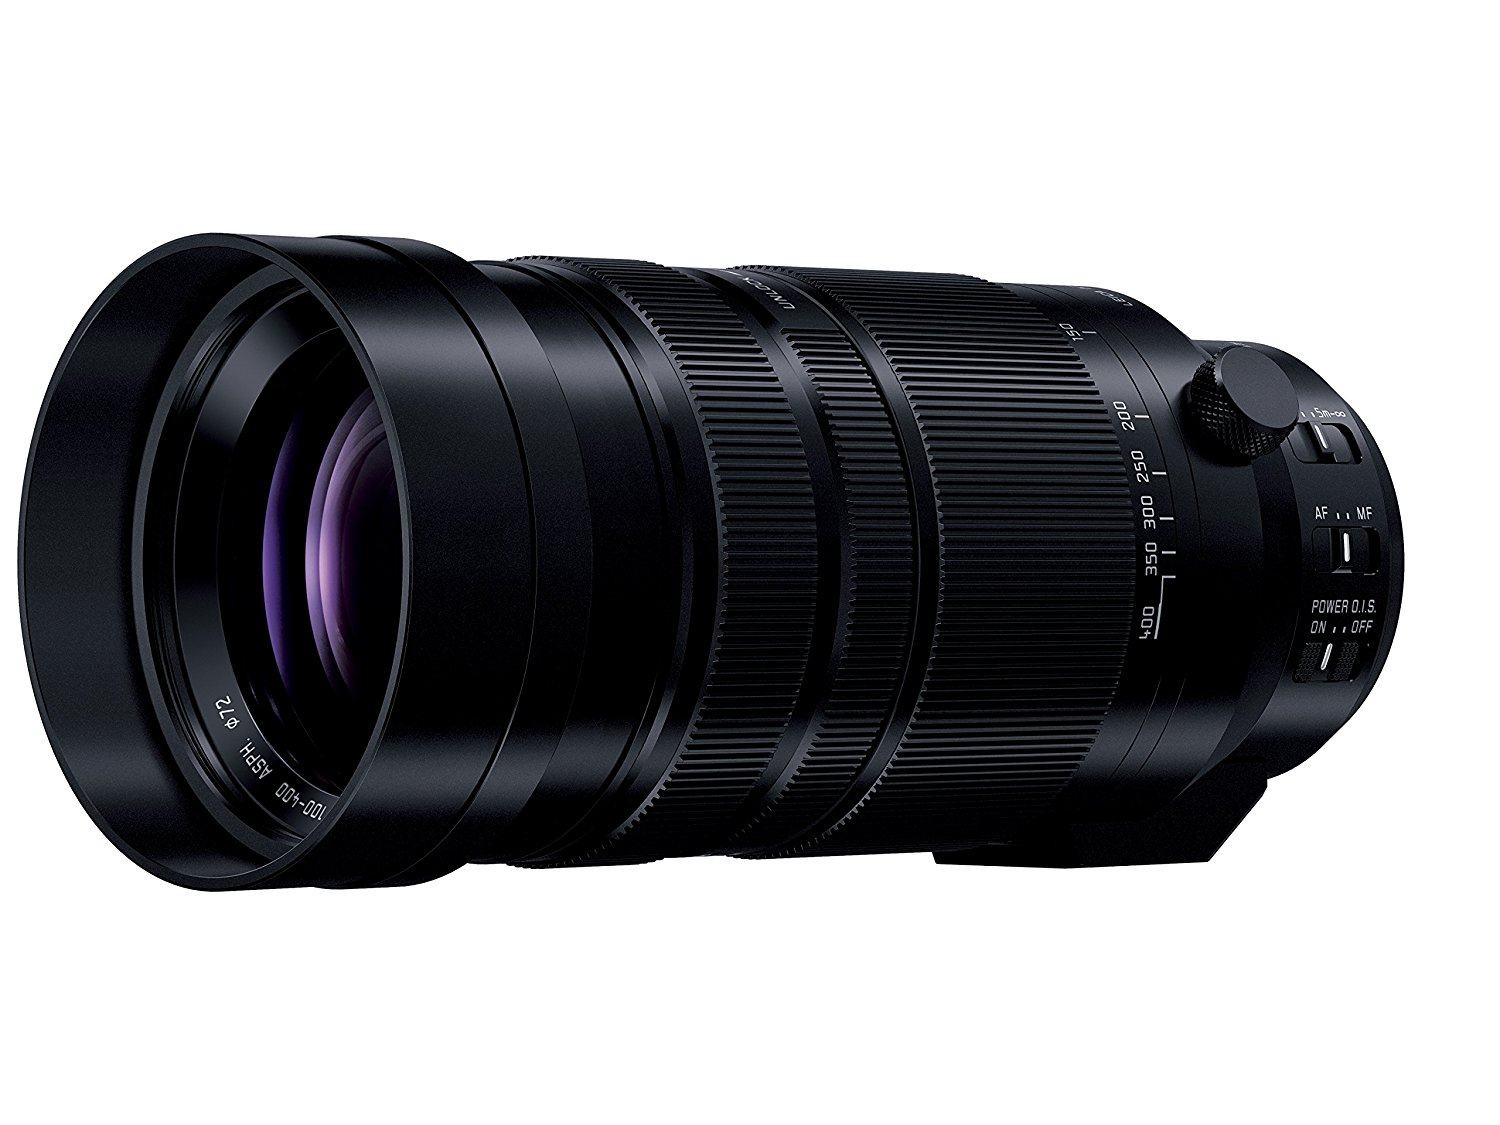 LEICA DG VARIO-ELMAR 100-400mm F4.0-6.3 ASPH. POWER O.I.S. review